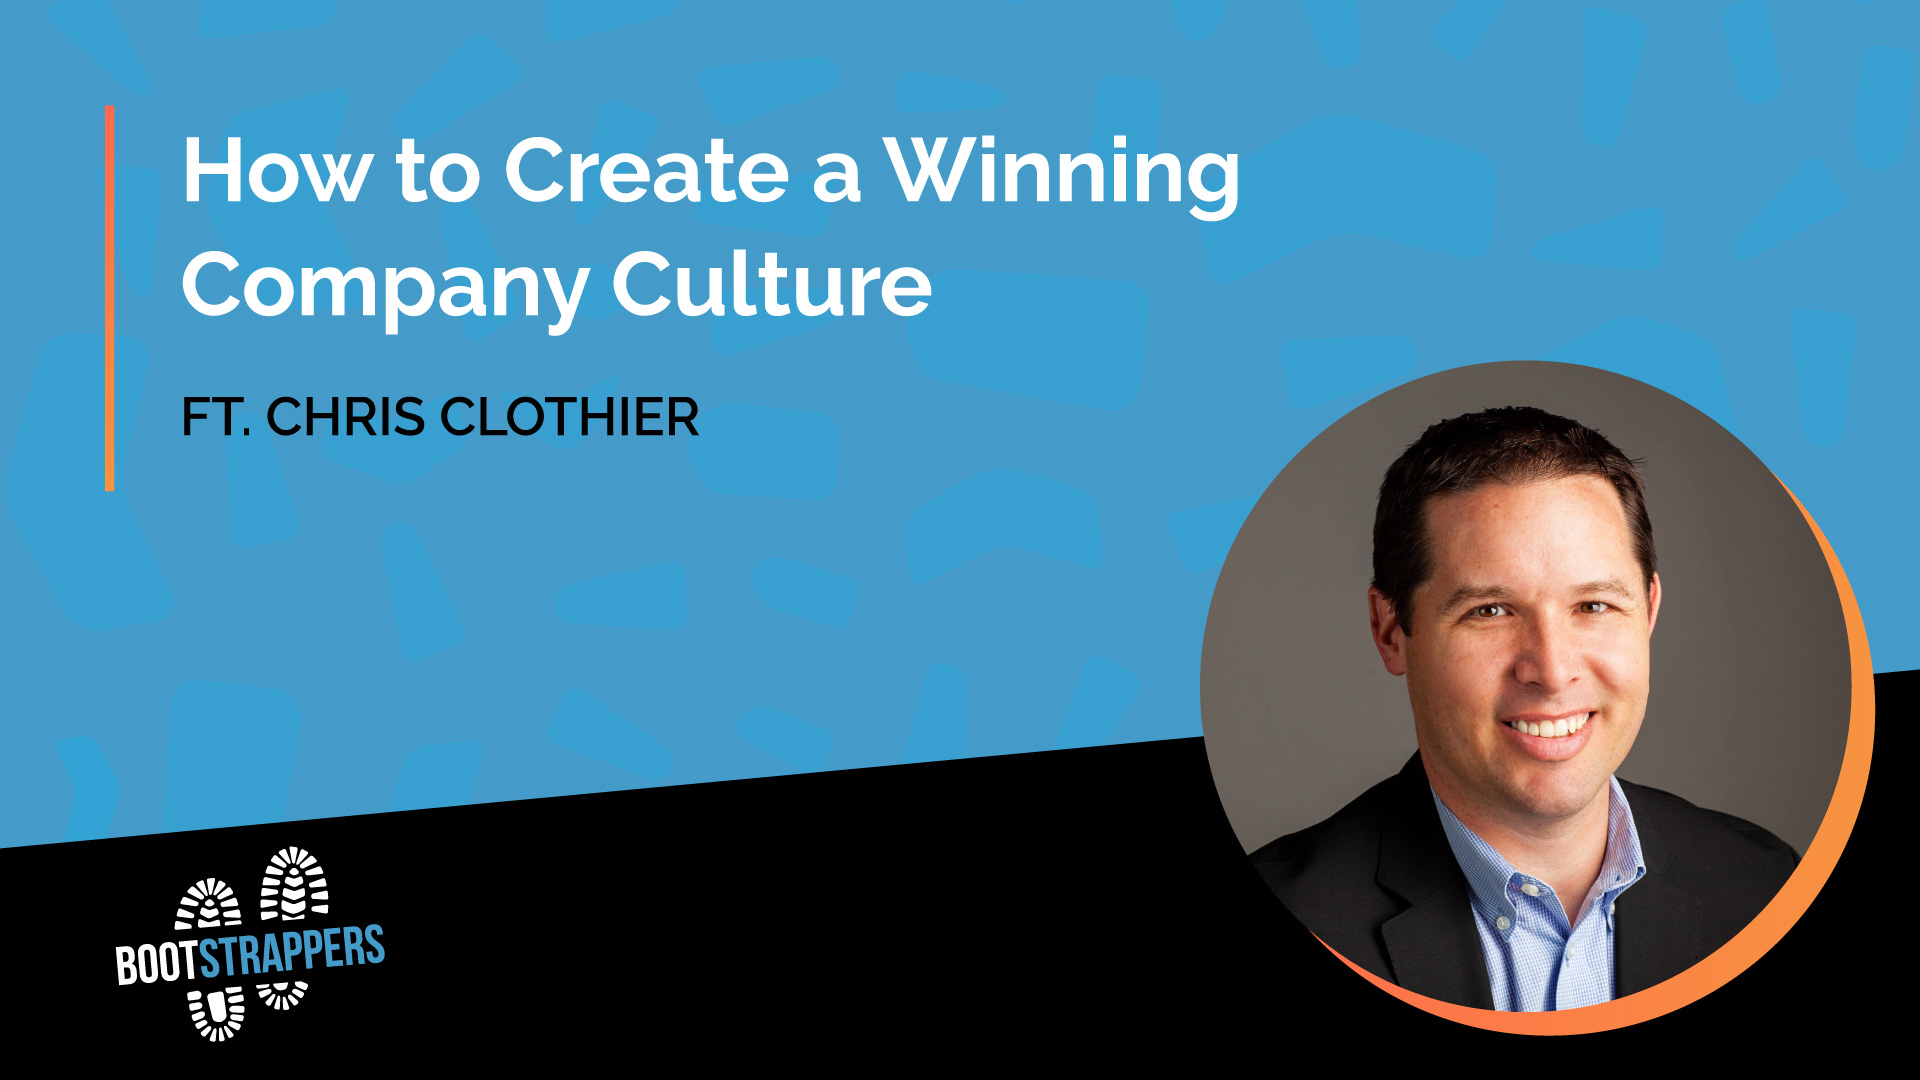 anequim-bootstrappers-create-winning-company-culture-chris-clothier